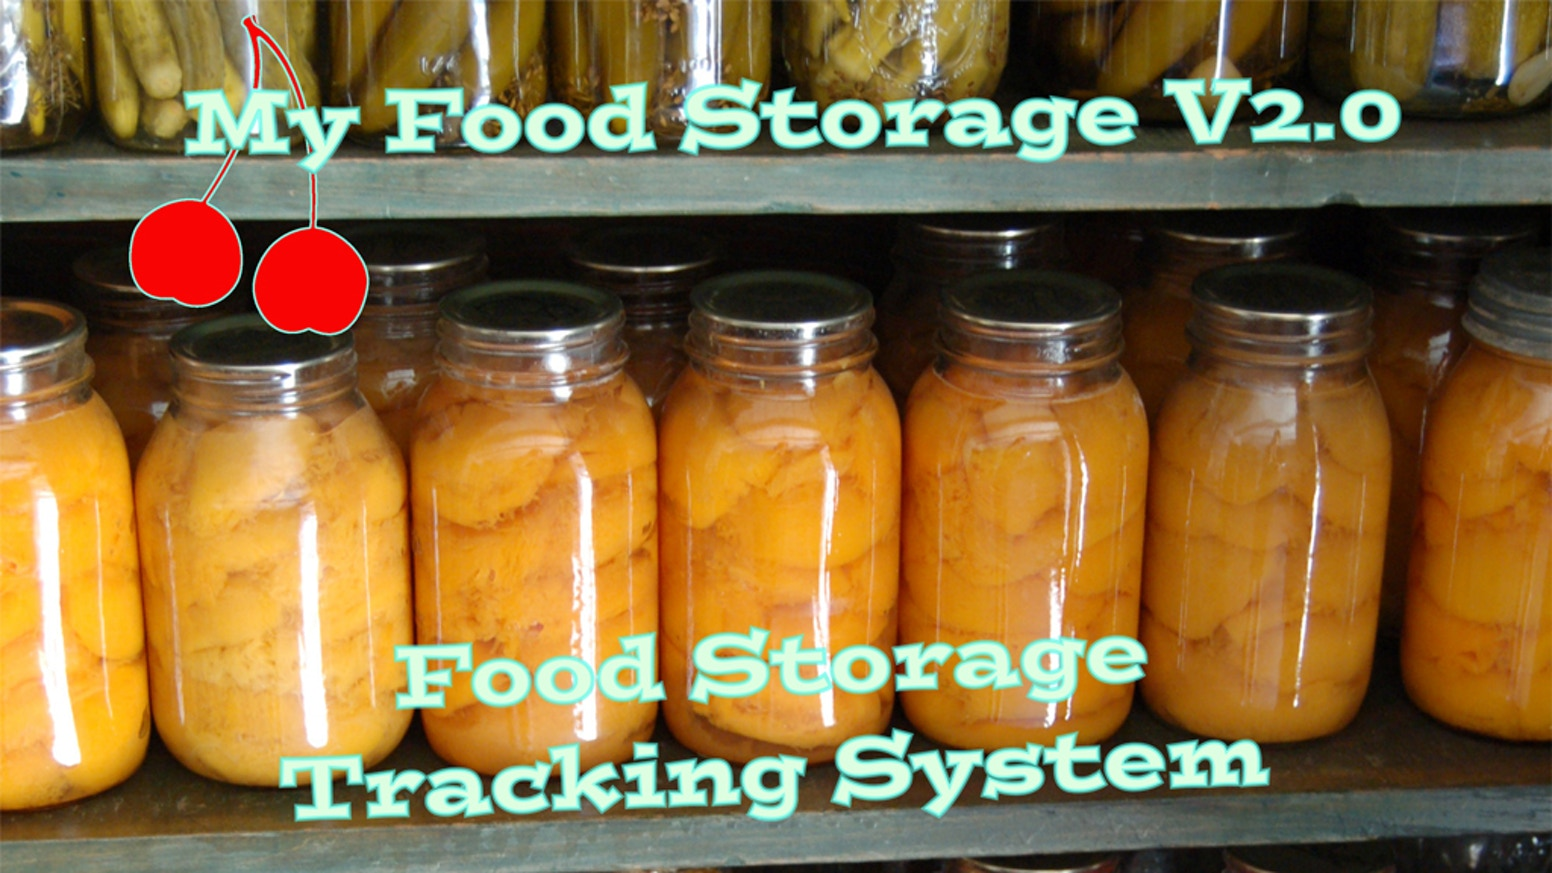 A Food Storage Tracking app currently in development using input from the kickstarter backers. For food storage related information, check out the companion website at http://mfs2.com, or you can pre order the app below.